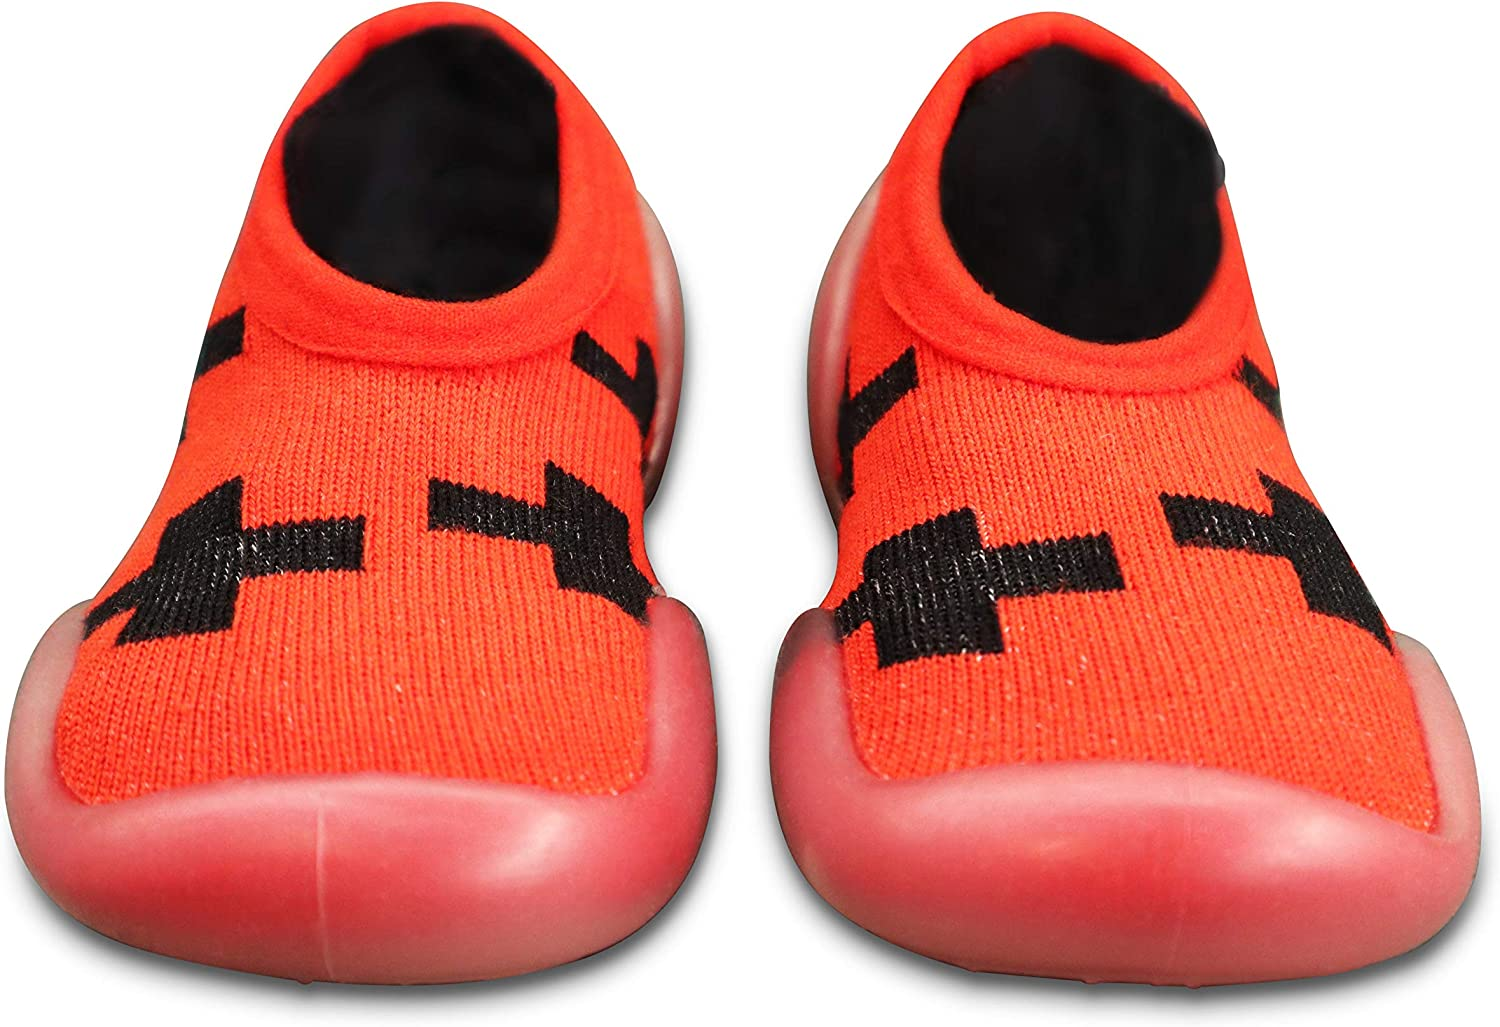 Unisex Baby Toddler Sock Shoes Star Stripes Breathable Cotton Anti Slip Rubber Sole First Walking Shoes Slippers Toddler Size